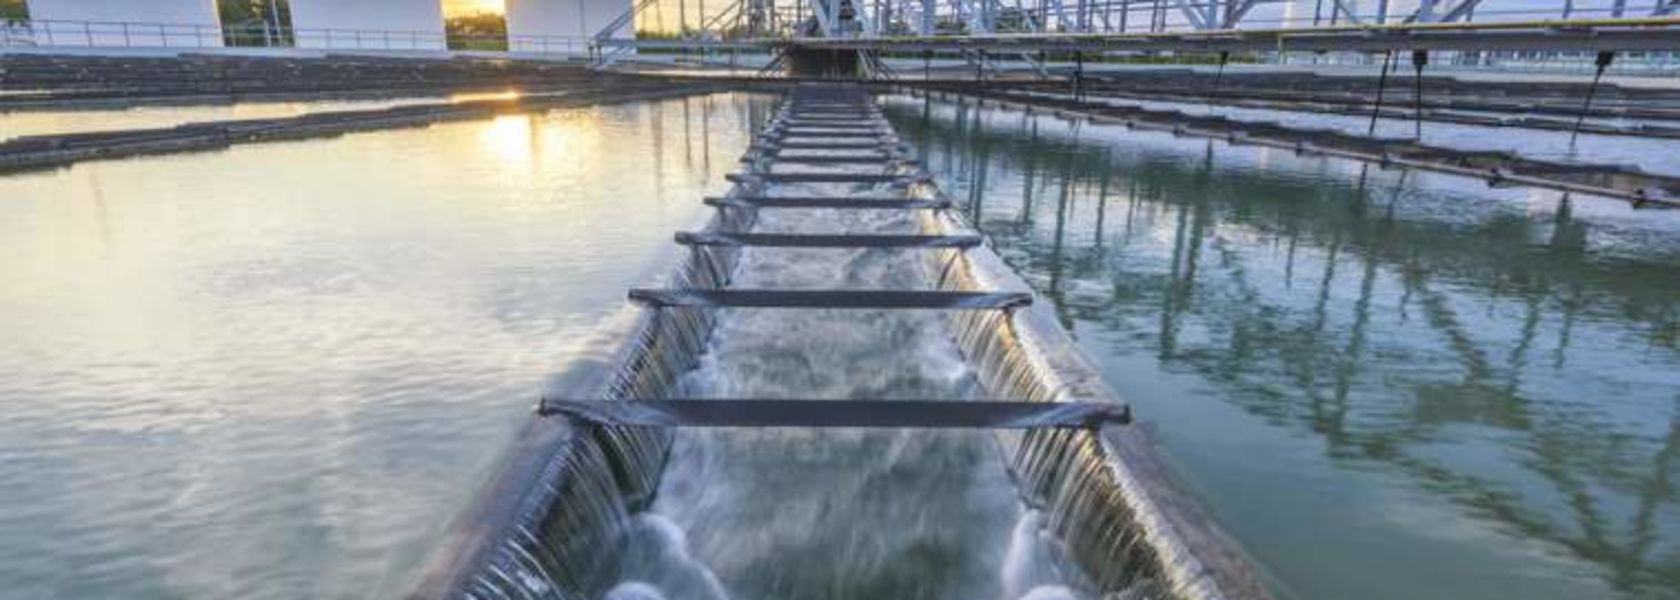 Pilot water treaters put to test